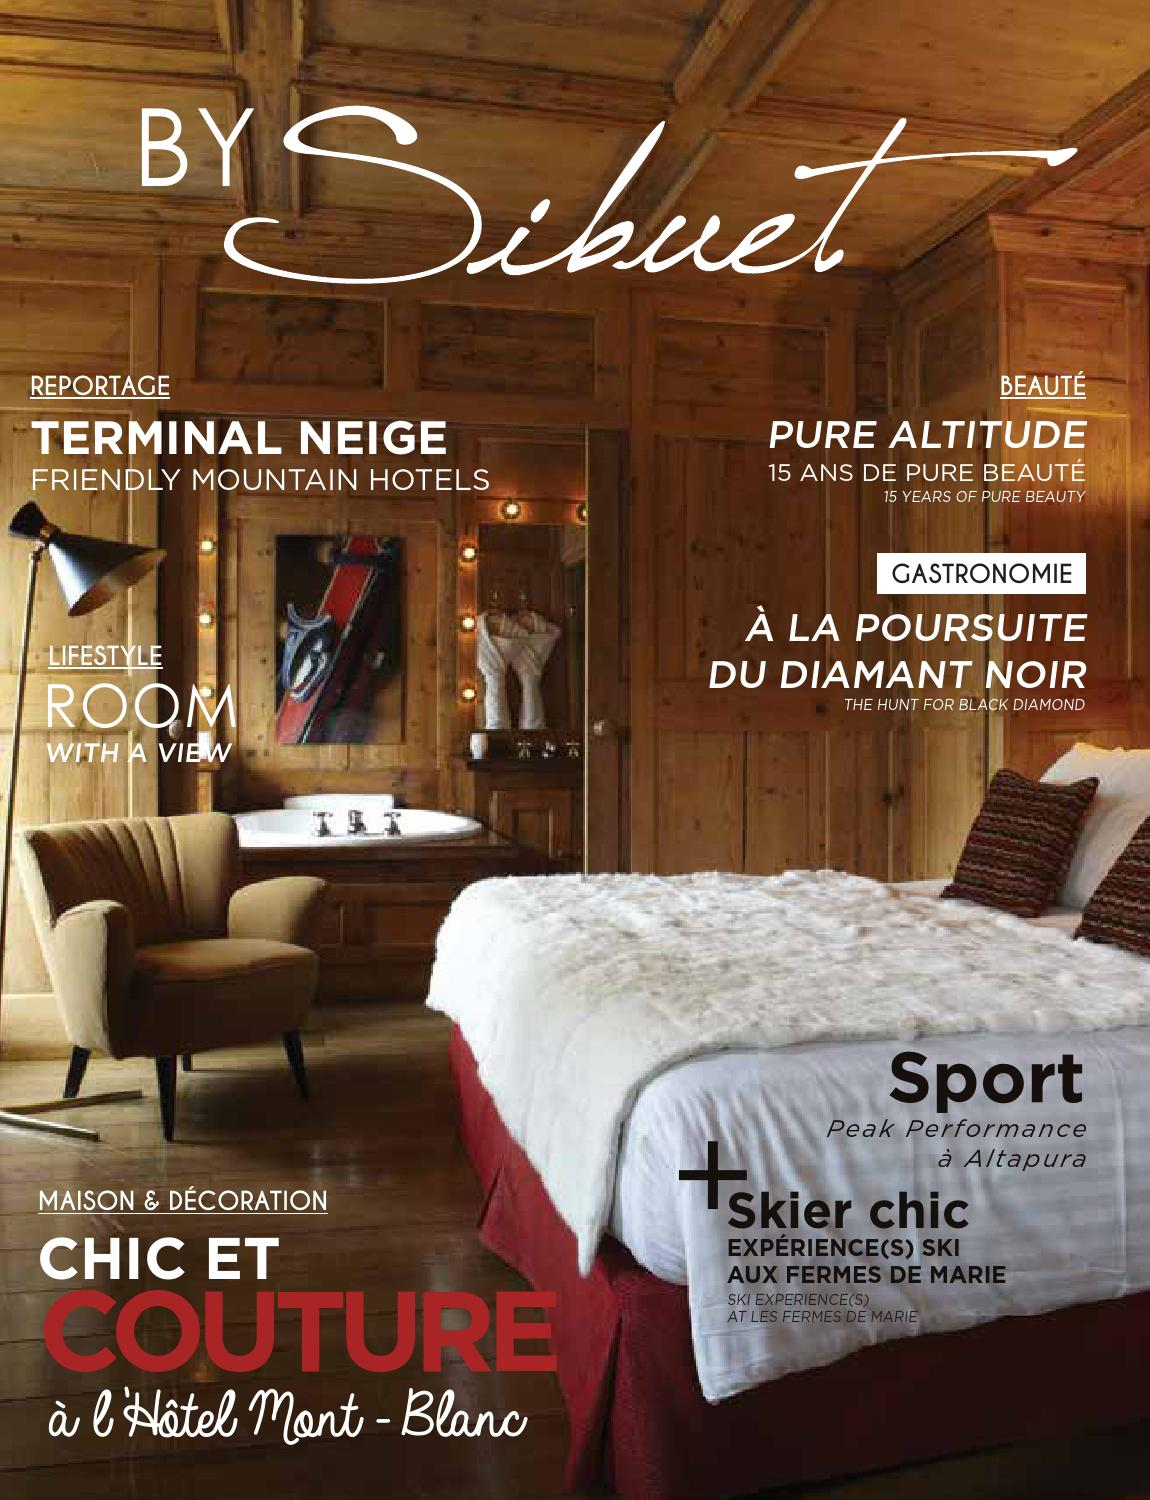 by sibuet 5 by maisons h tels sibuet issuu. Black Bedroom Furniture Sets. Home Design Ideas